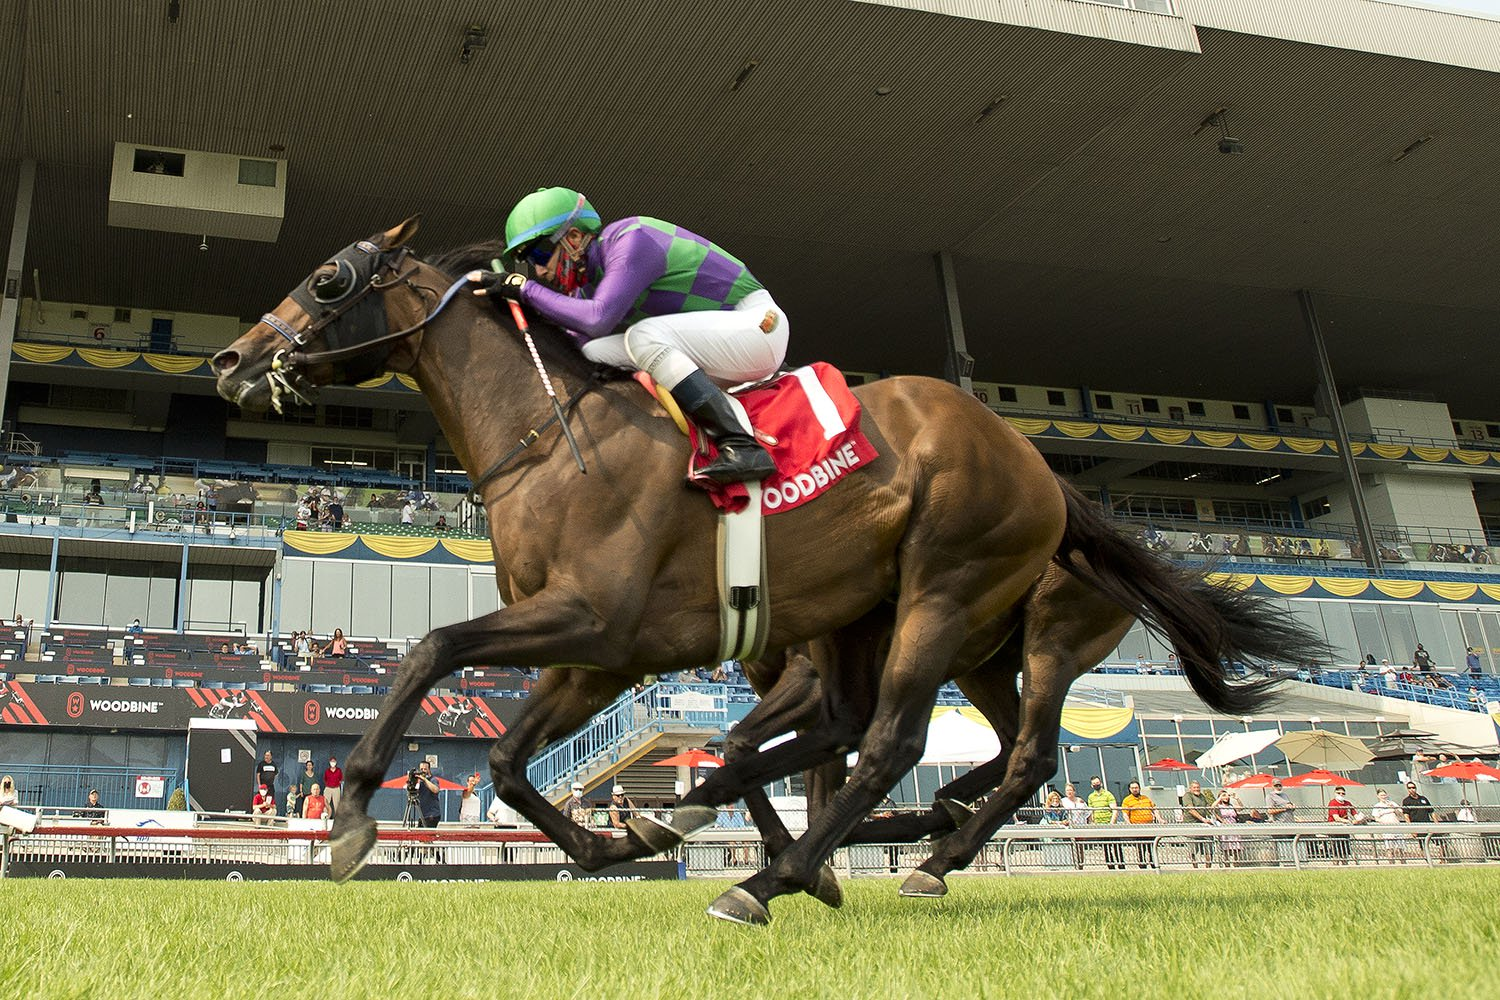 Avie's Flatter and jockey Luis Contreras winning the $175,000 Connaught Cup (Grade 2) on Sunday, July 18 at Woodbine Racetrack. (Michael Burns Photo)